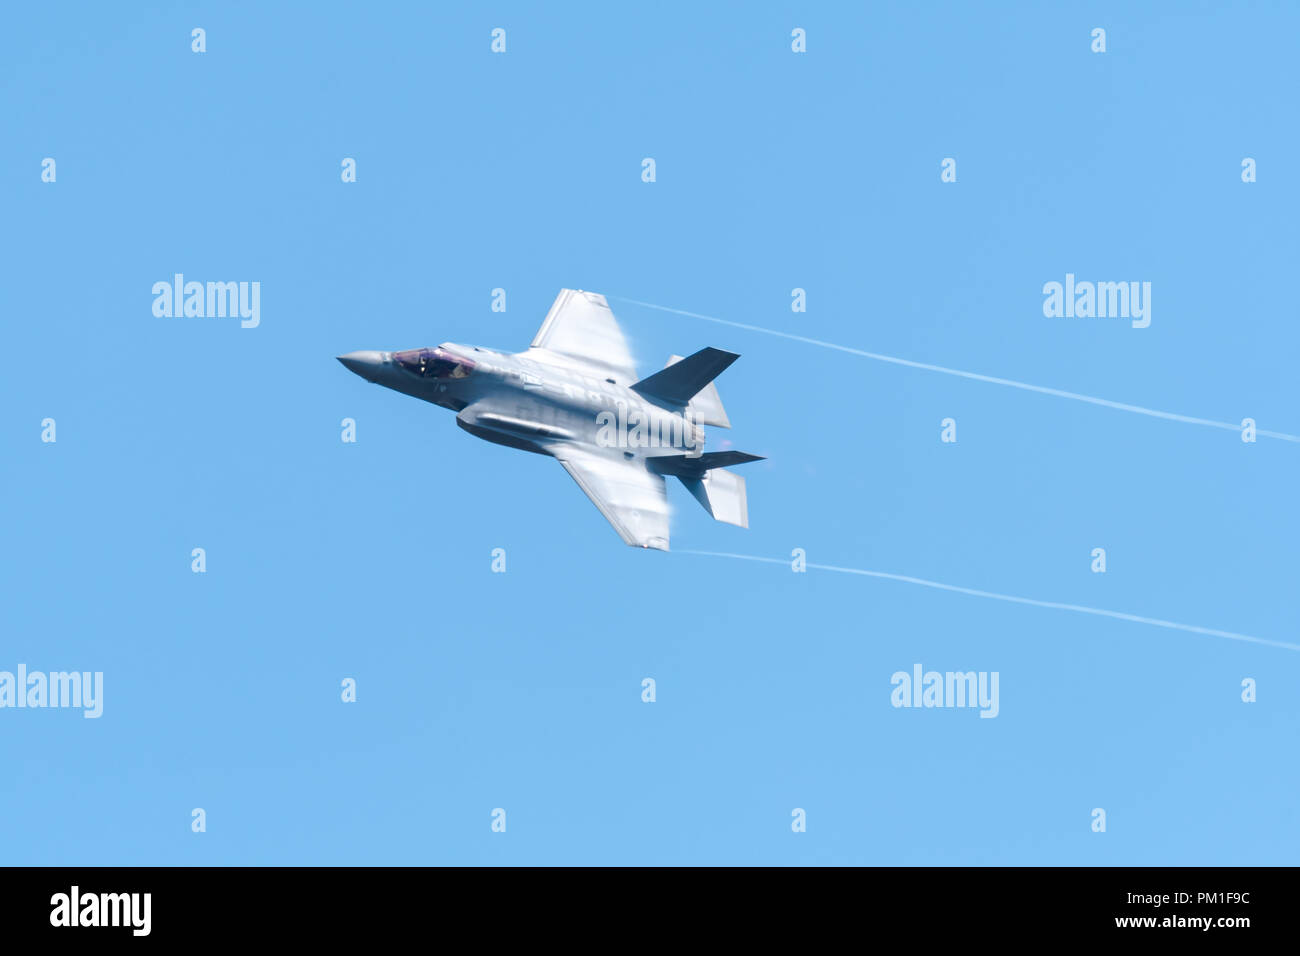 FAIRFORD, UK, JULY 13 2018: A photograph documenting a Lockheed Martin F-35 Lightning II stealth multirole fighter aircraft from the USAF displaying a - Stock Image